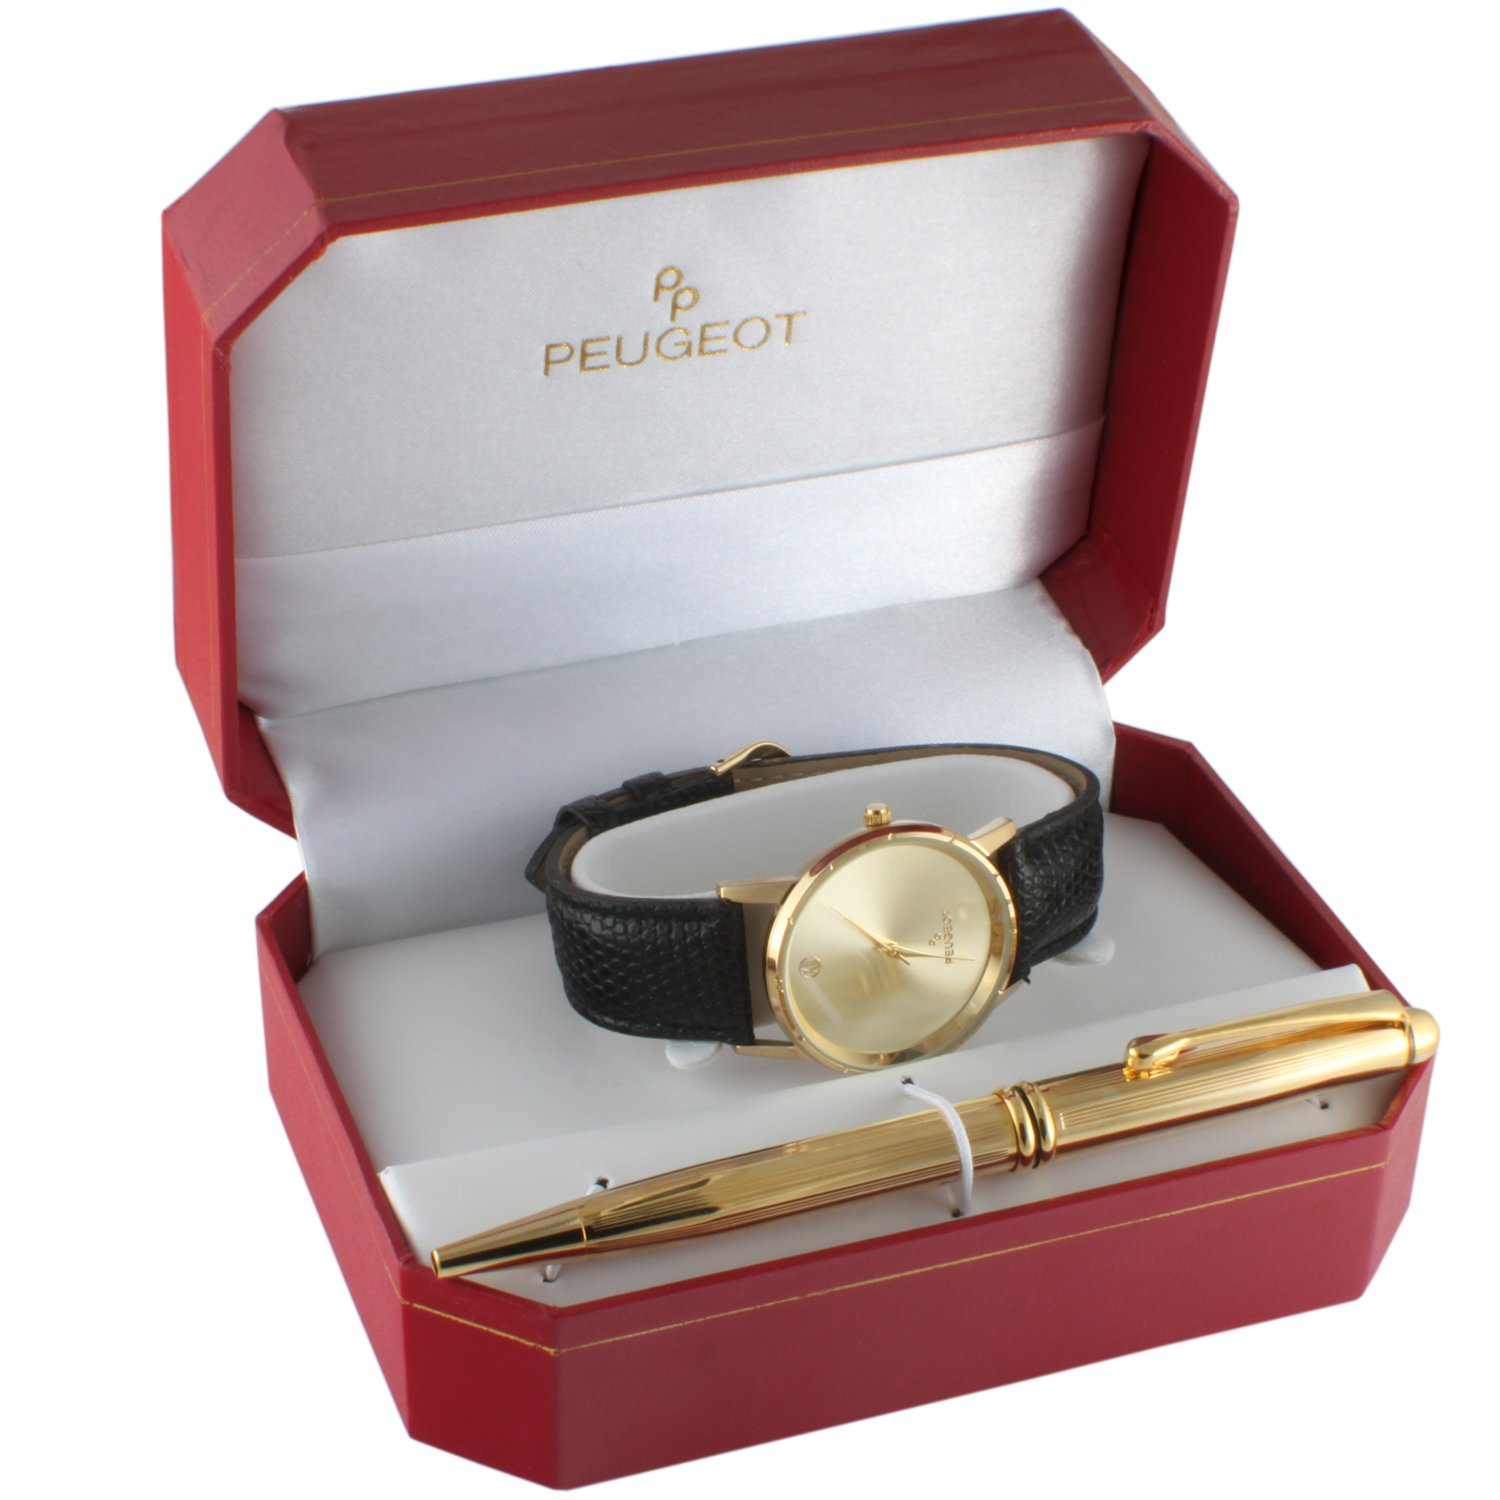 Peugeot Men's Black Leather Watch Gift Set with Gold -tone Pen